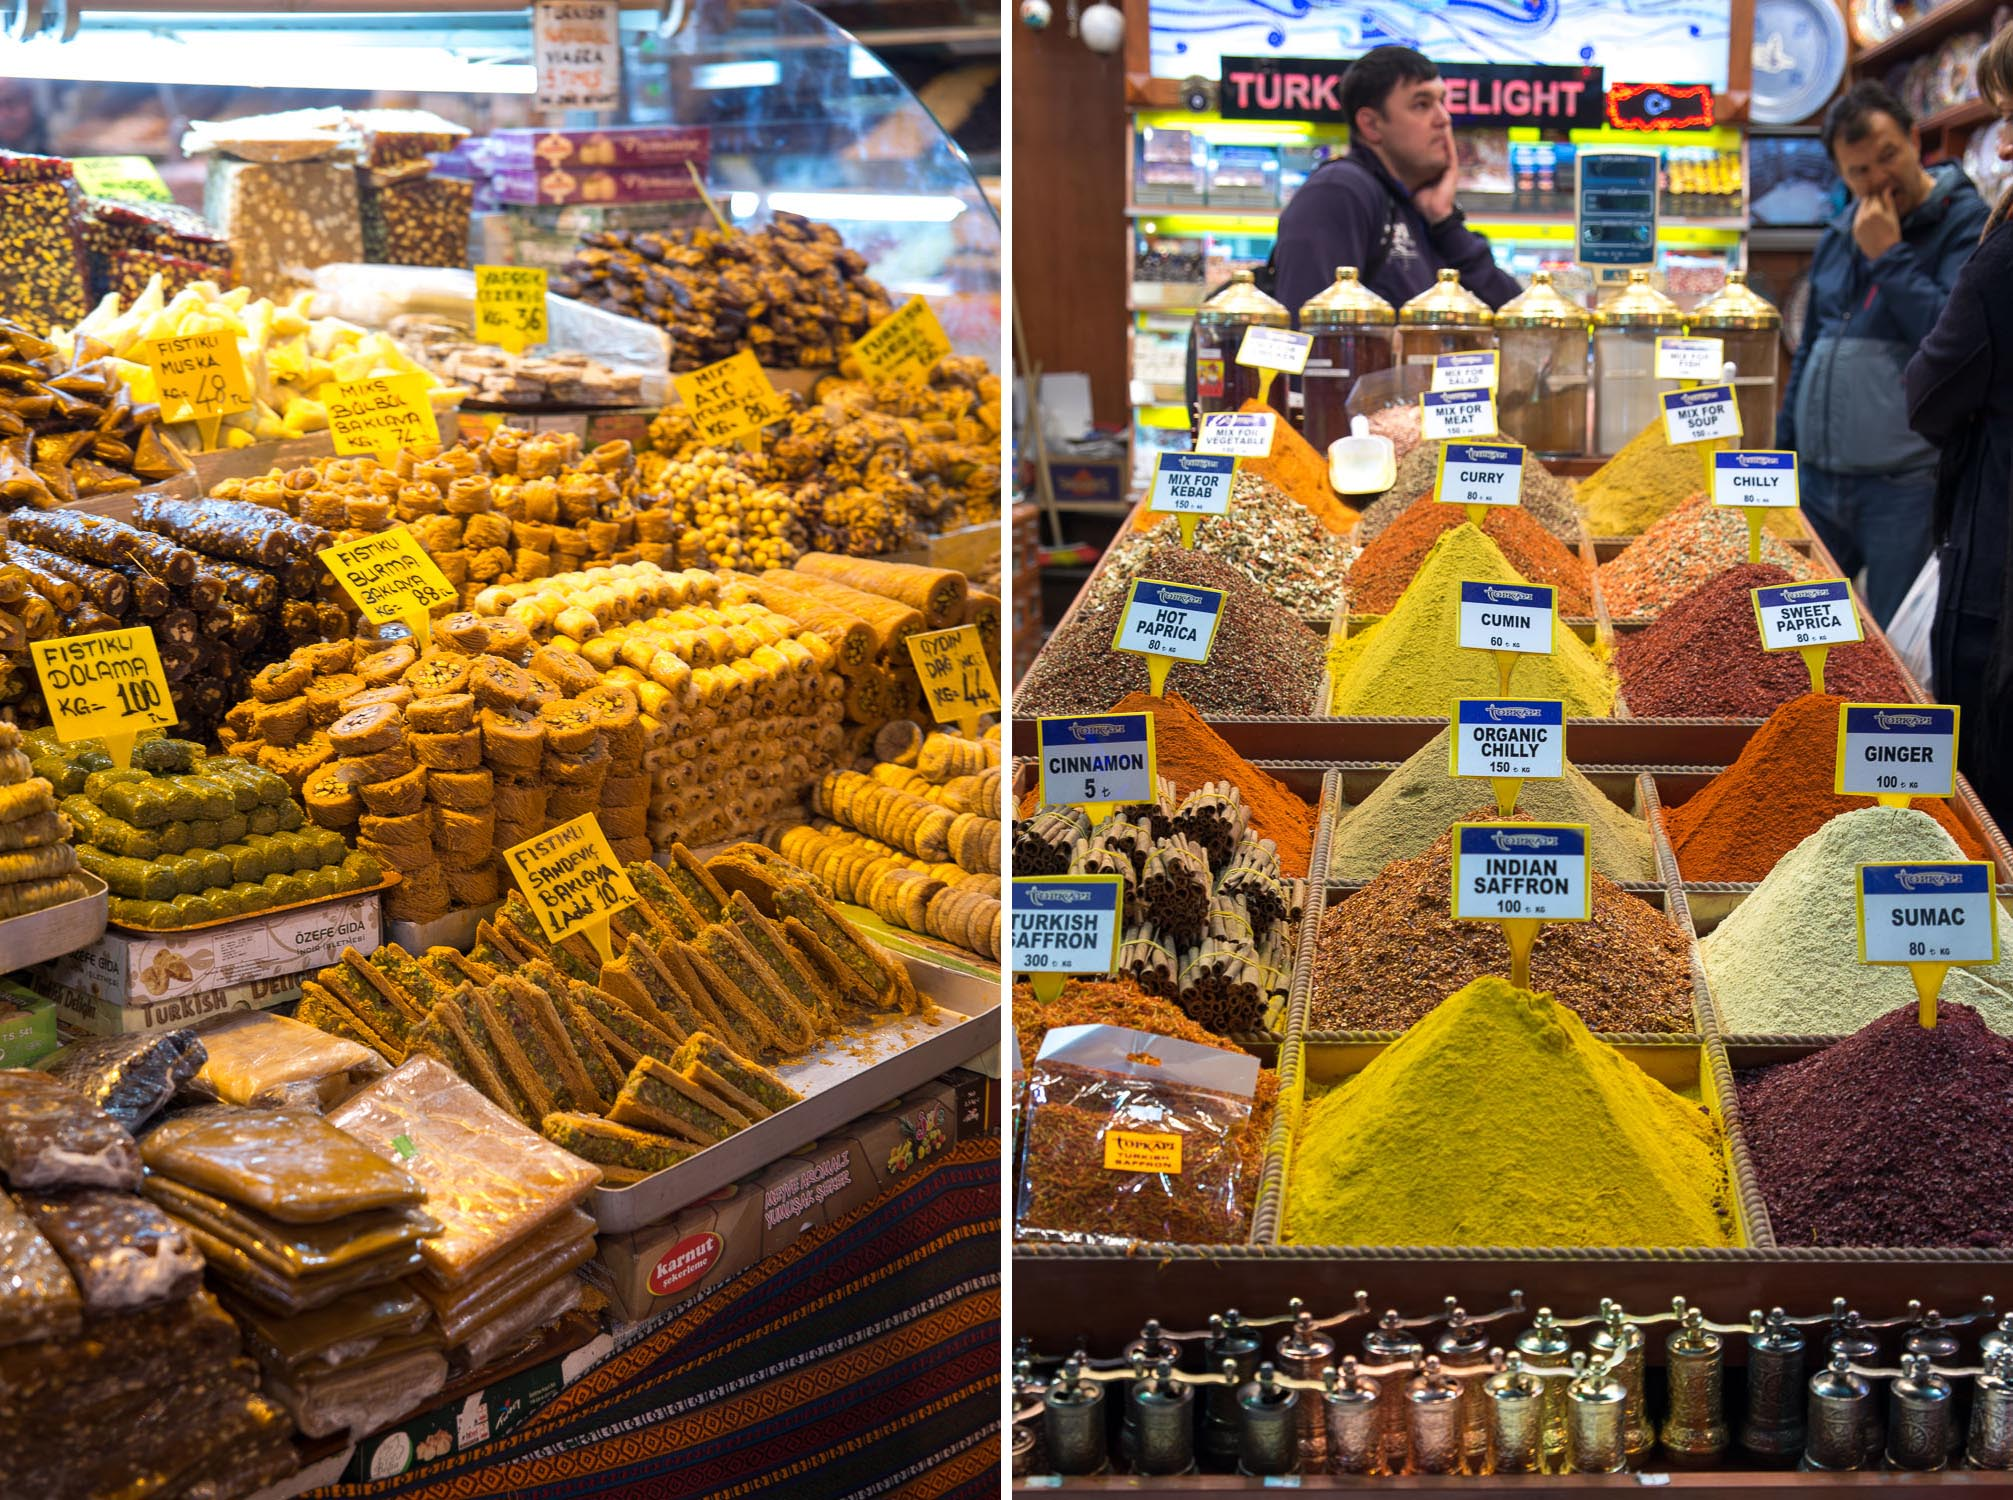 Baklava and spices at the Spice Bazaar, Istanbul Turkey